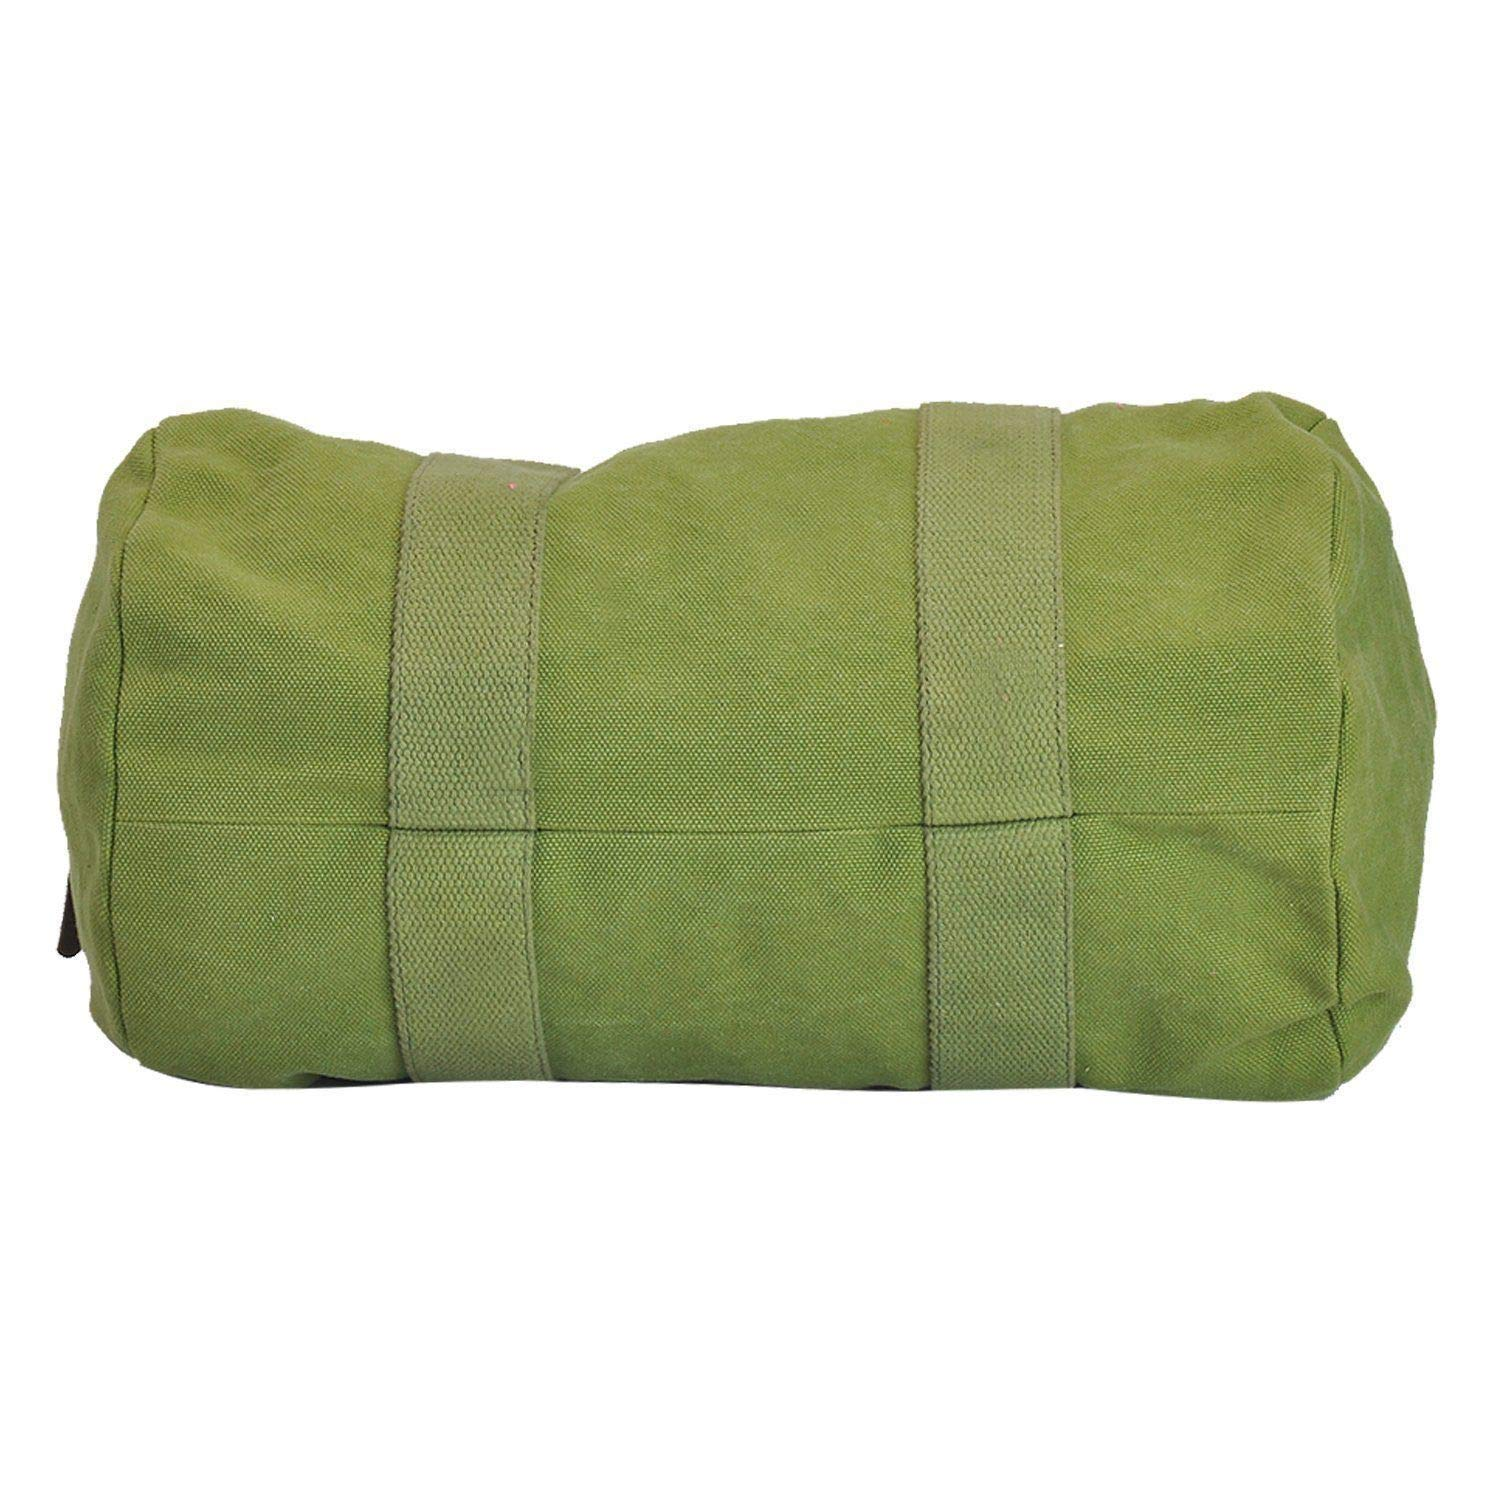 Canvas /& Awl Green Canvas /& Leather Trim Unisex Duffel Bag /…